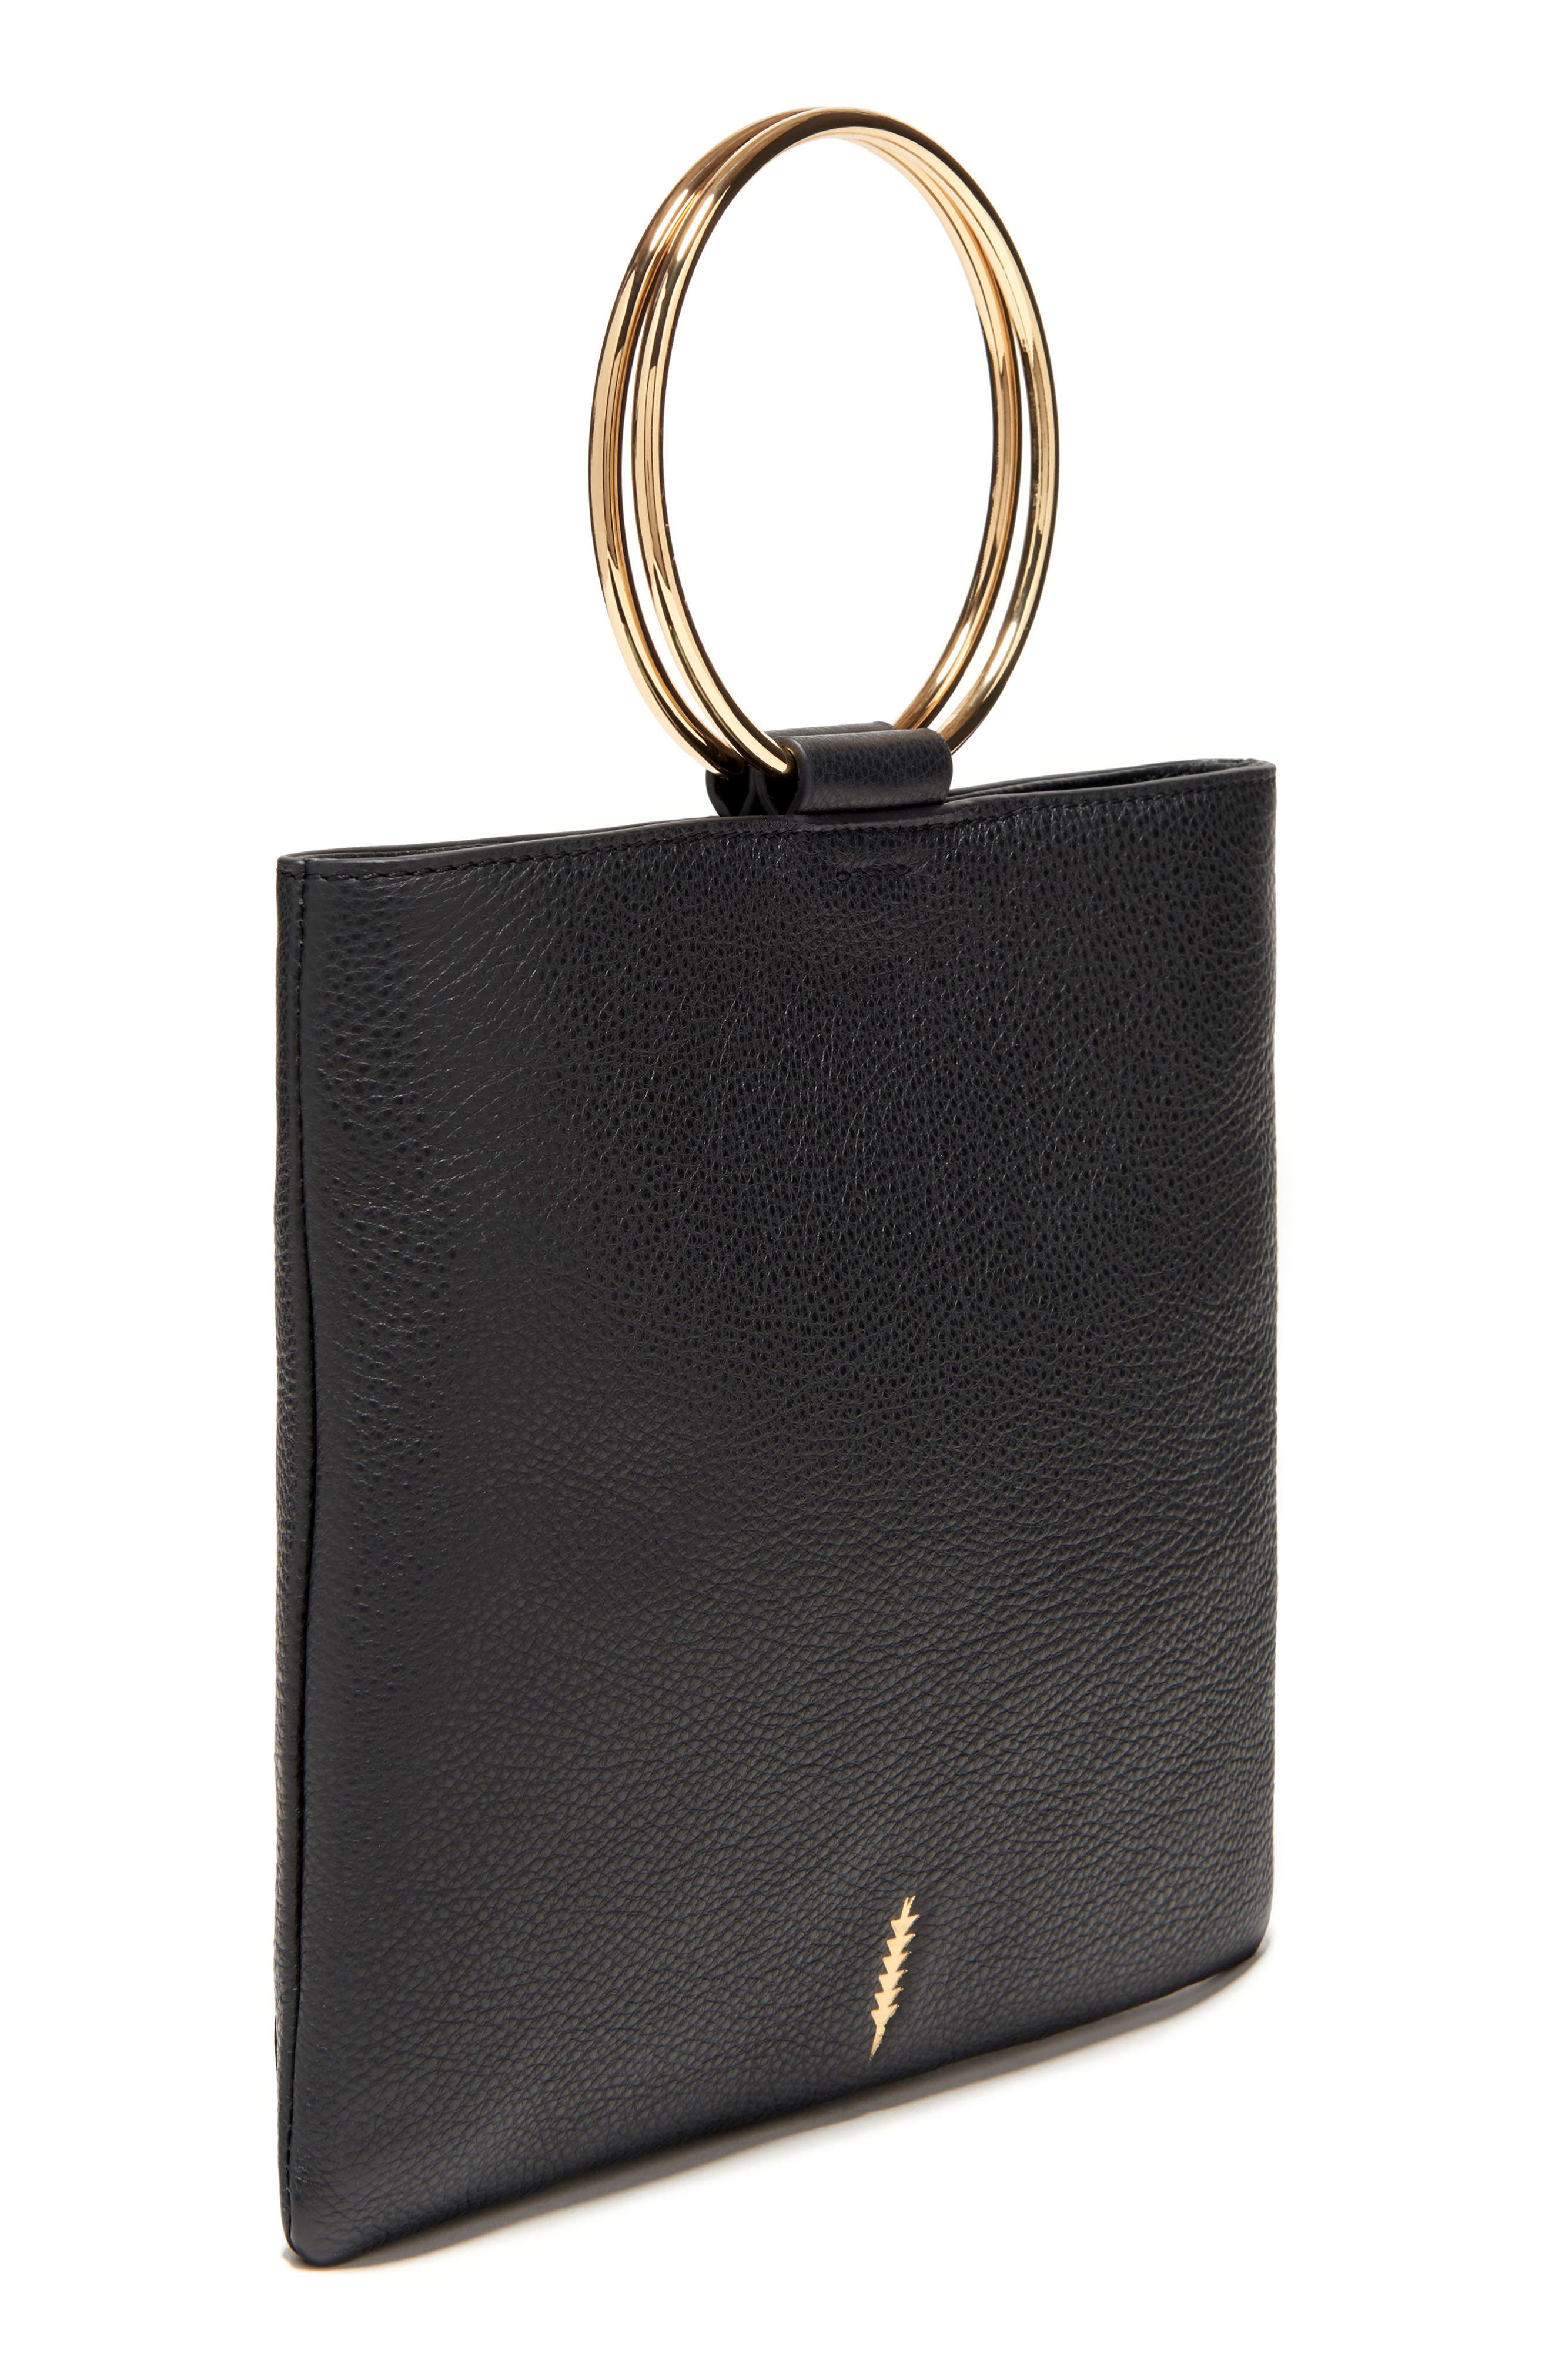 THACKER,                             Le Pouch Leather Ring Handle Crossbody Bag,                             Alternate thumbnail 3, color,                             001